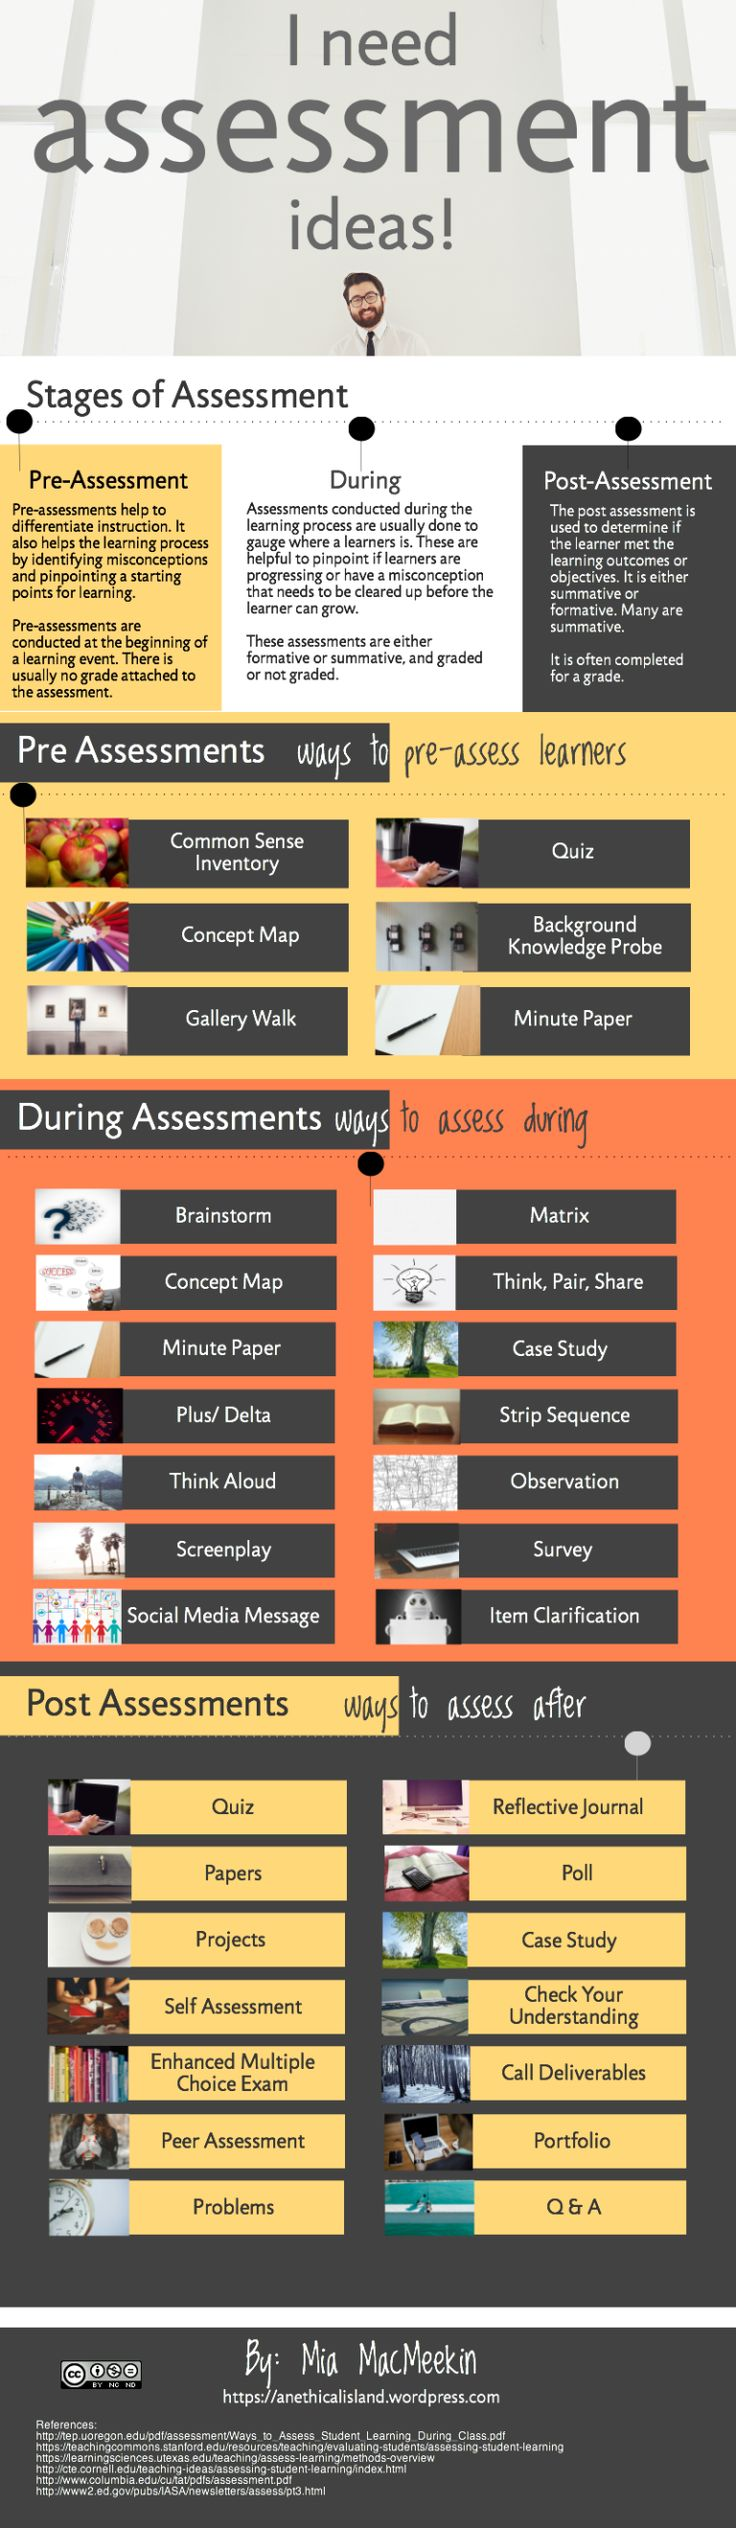 best assessment ideas assessment for learning  there are so many opportunities to assess learning when do you assess learning how do you assess learning here are a few of my favorites